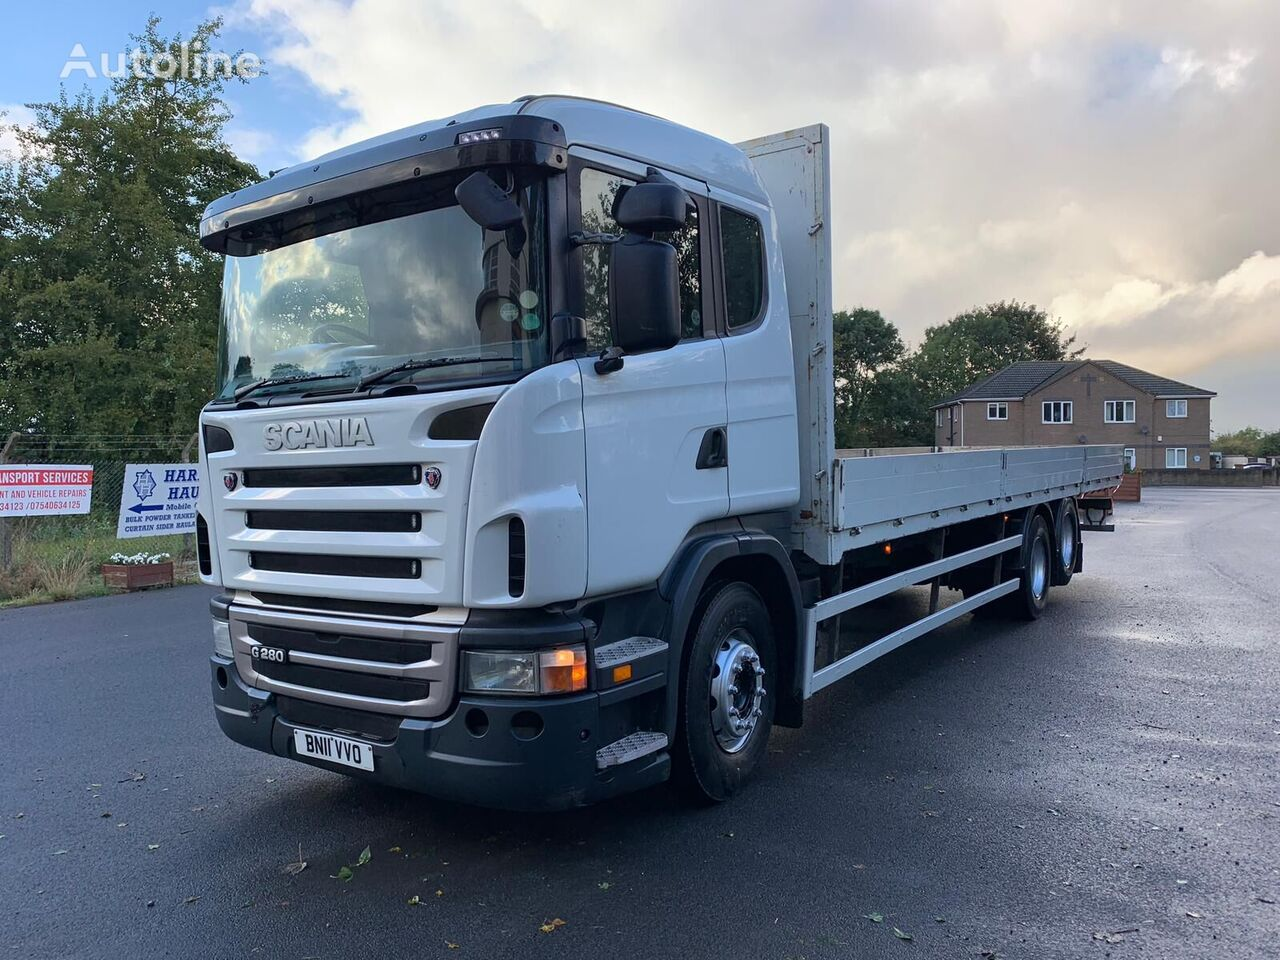 SCANIA P380 flatbed truck